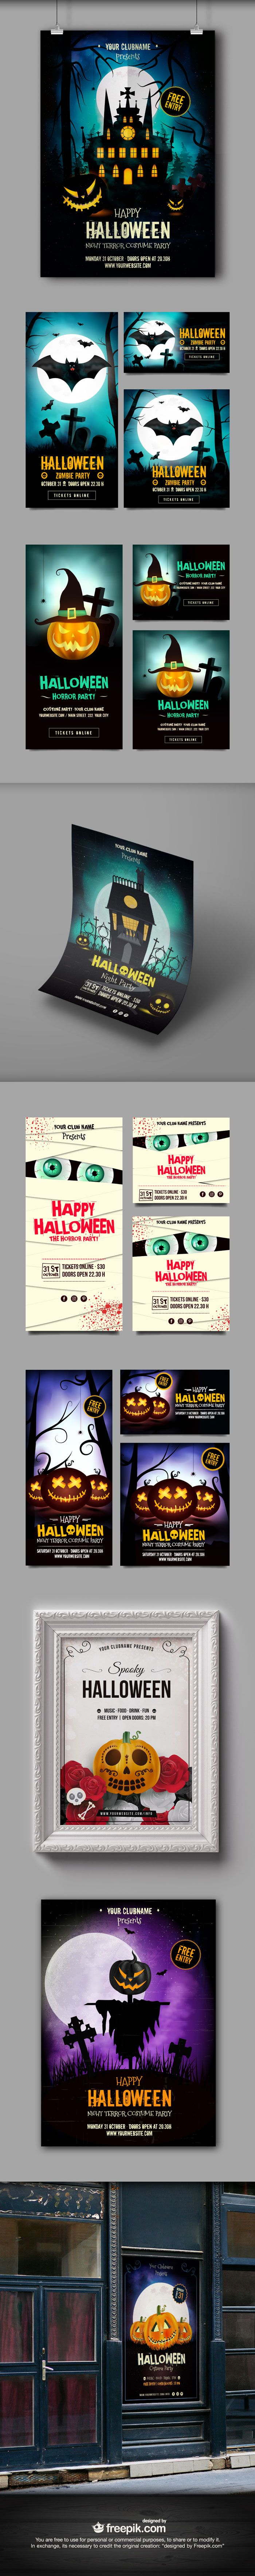 Free Halloween Poster and Banner Templates (exclusive)